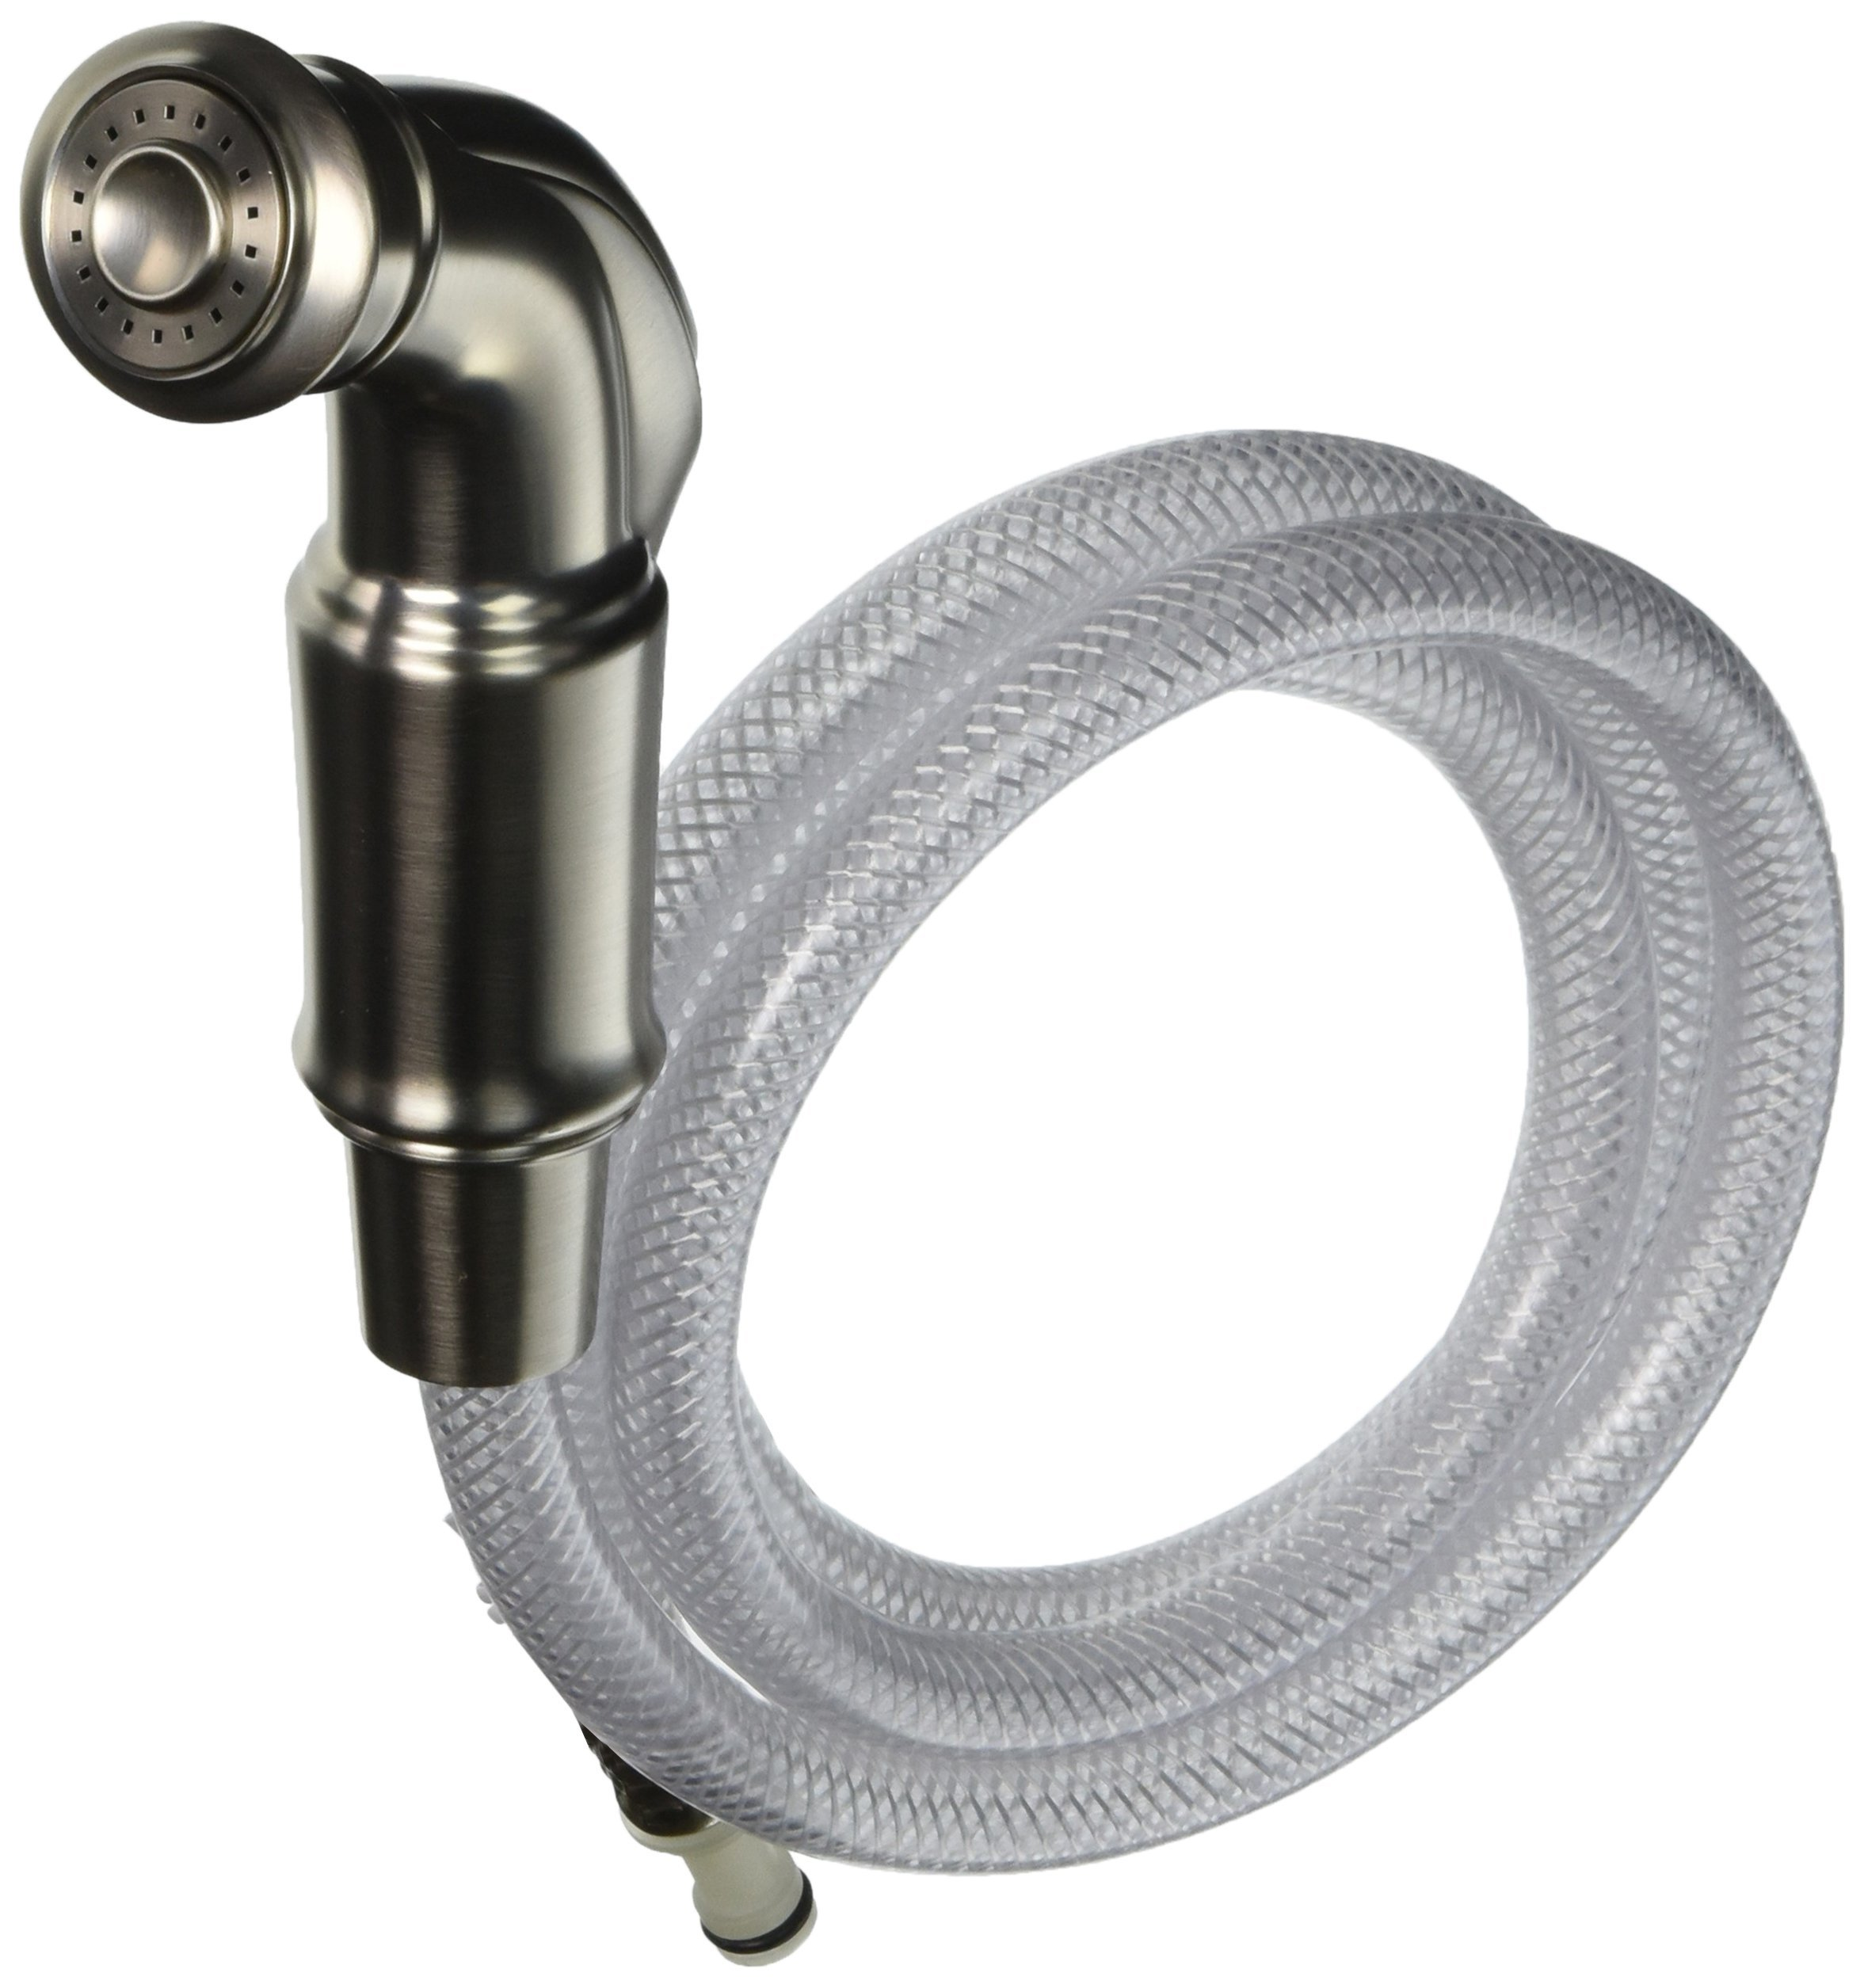 Moen 144474MSRS Replacement Hose and Spray Kit, Spot Resist Stainless Microban